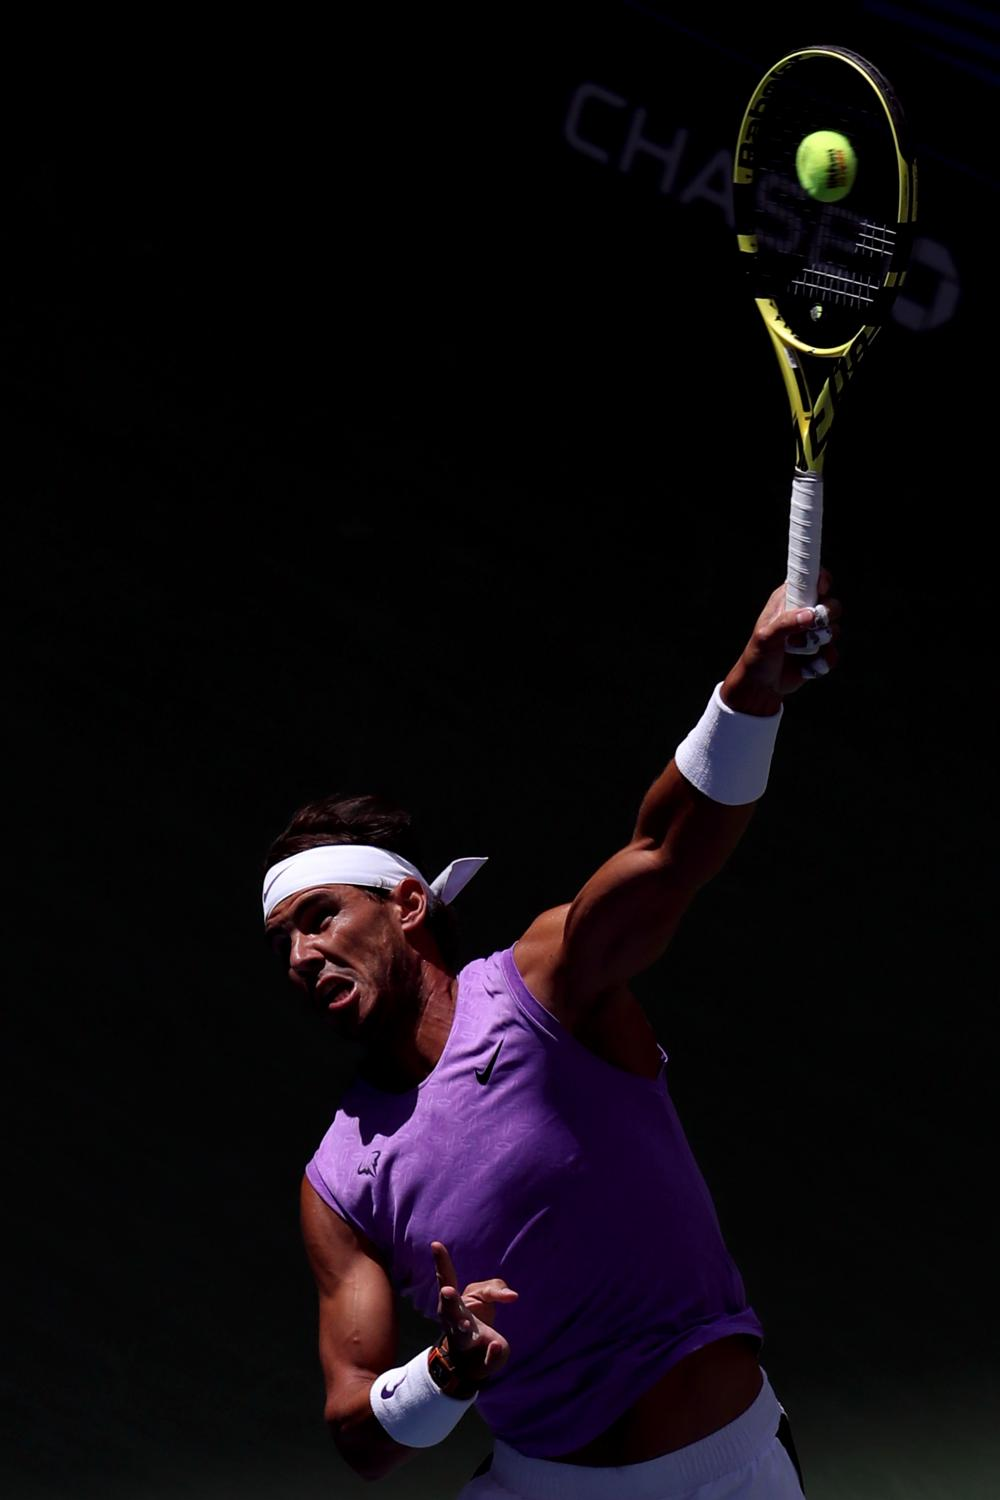 NEW YORK, NEW YORK - AUGUST 31: Rafael Nadal of Spain serves during his Men's Singles third round match against Hyeon Chung of South Korea on day six of the 2019 US Open at the USTA Billie Jean King National Tennis Center on August 31, 2019 in Queens borough of New York City. (Photo by Katharine Lotze/Getty Images)